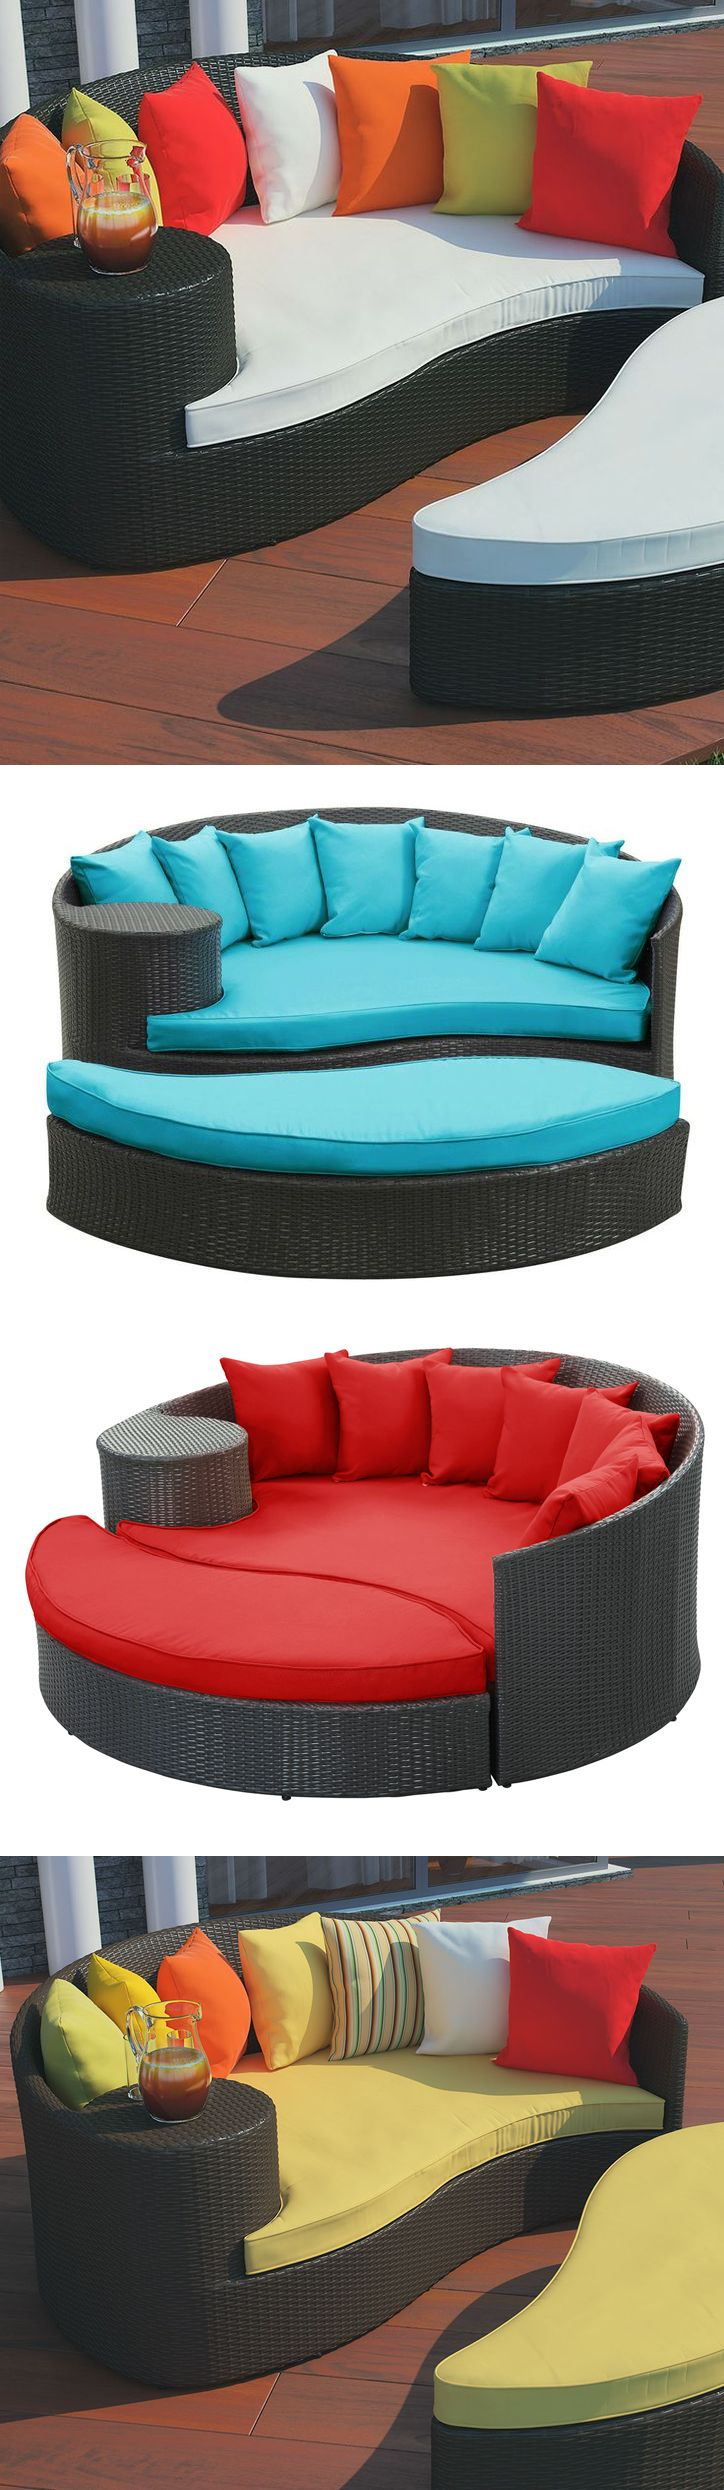 Outdoor wicker patio daybed with ottoman #furniture_design